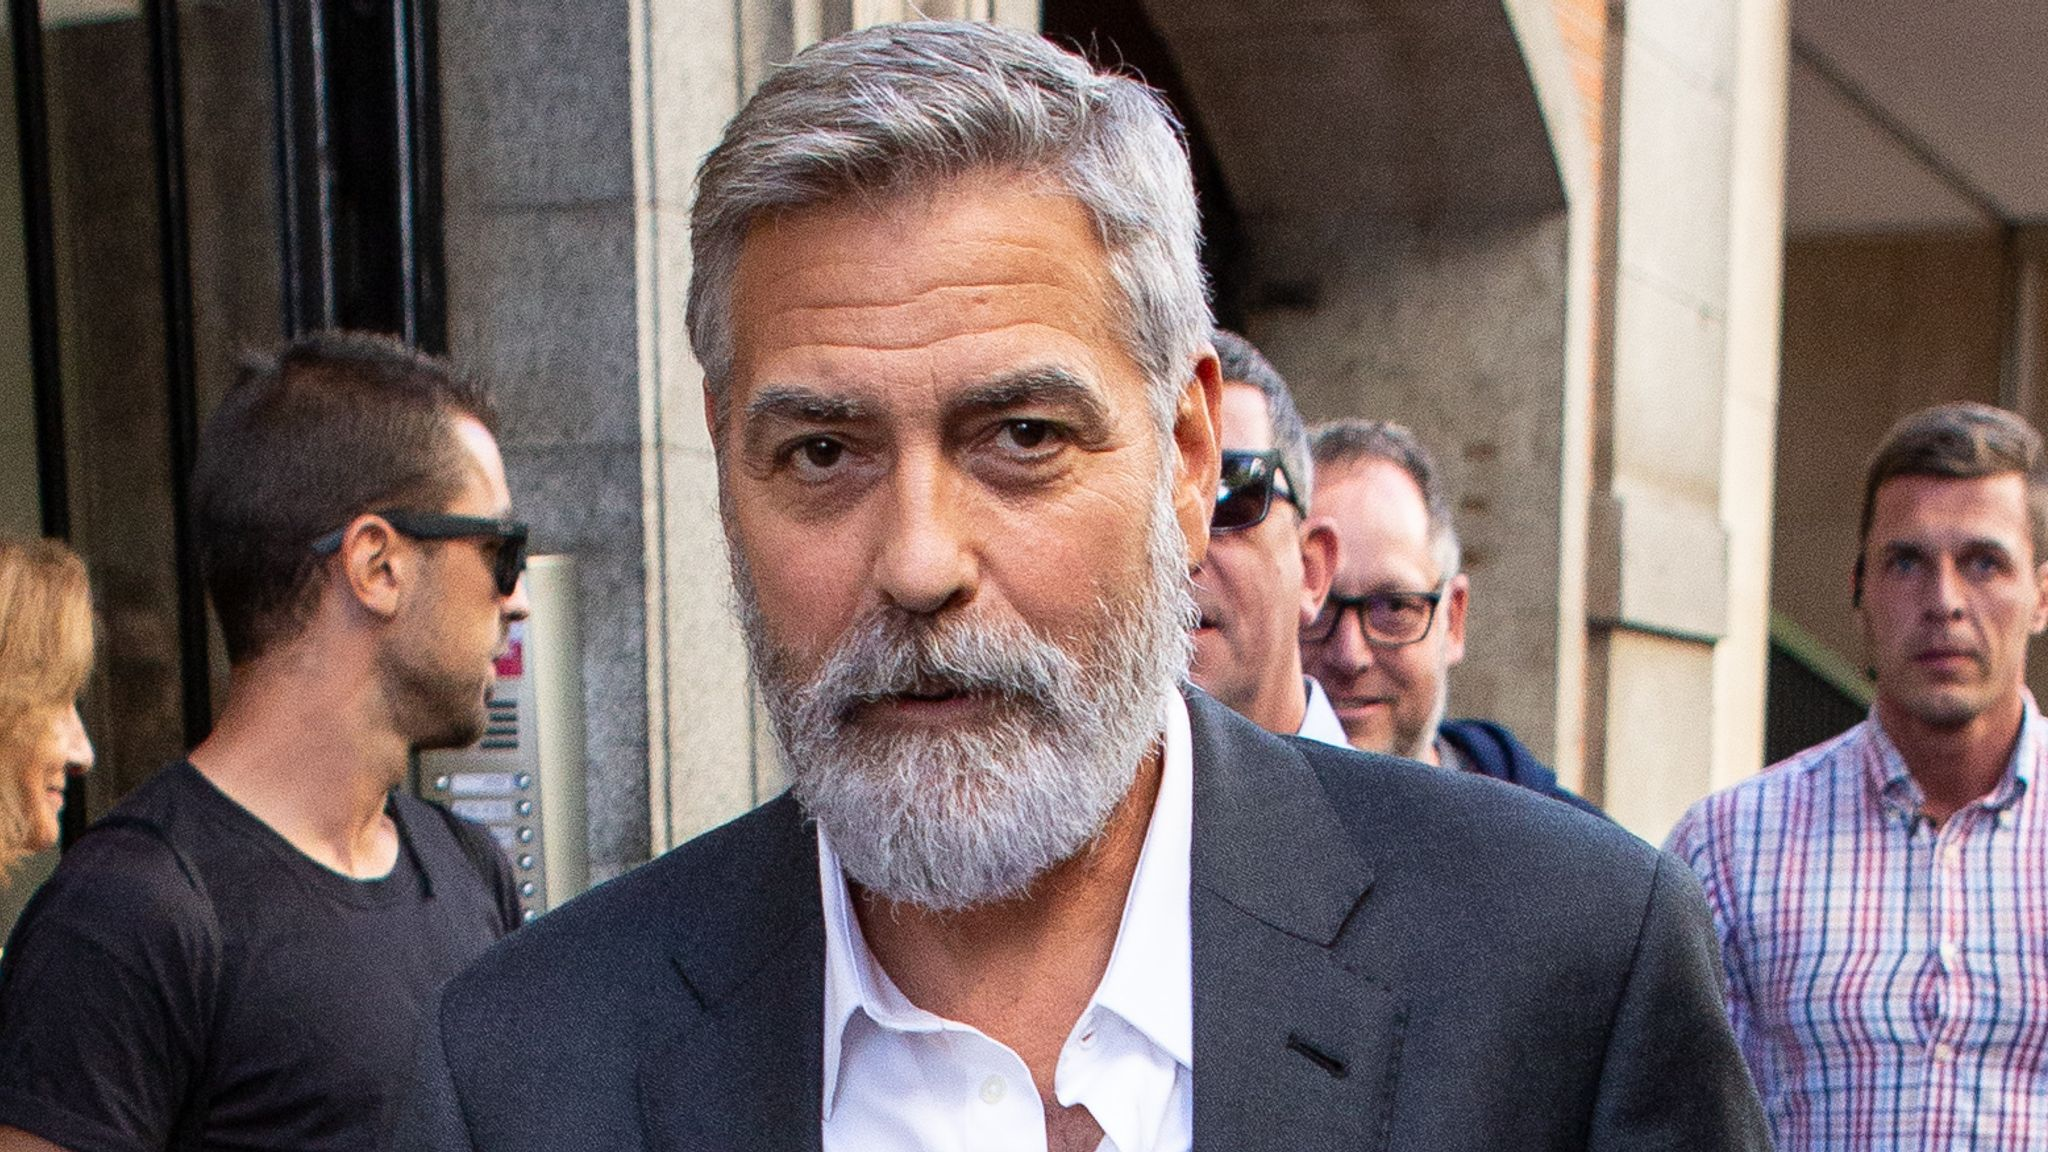 George Clooney Extreme Weight Loss For The Midnight Sky Led To Pancreatitis Ents Arts News Sky News